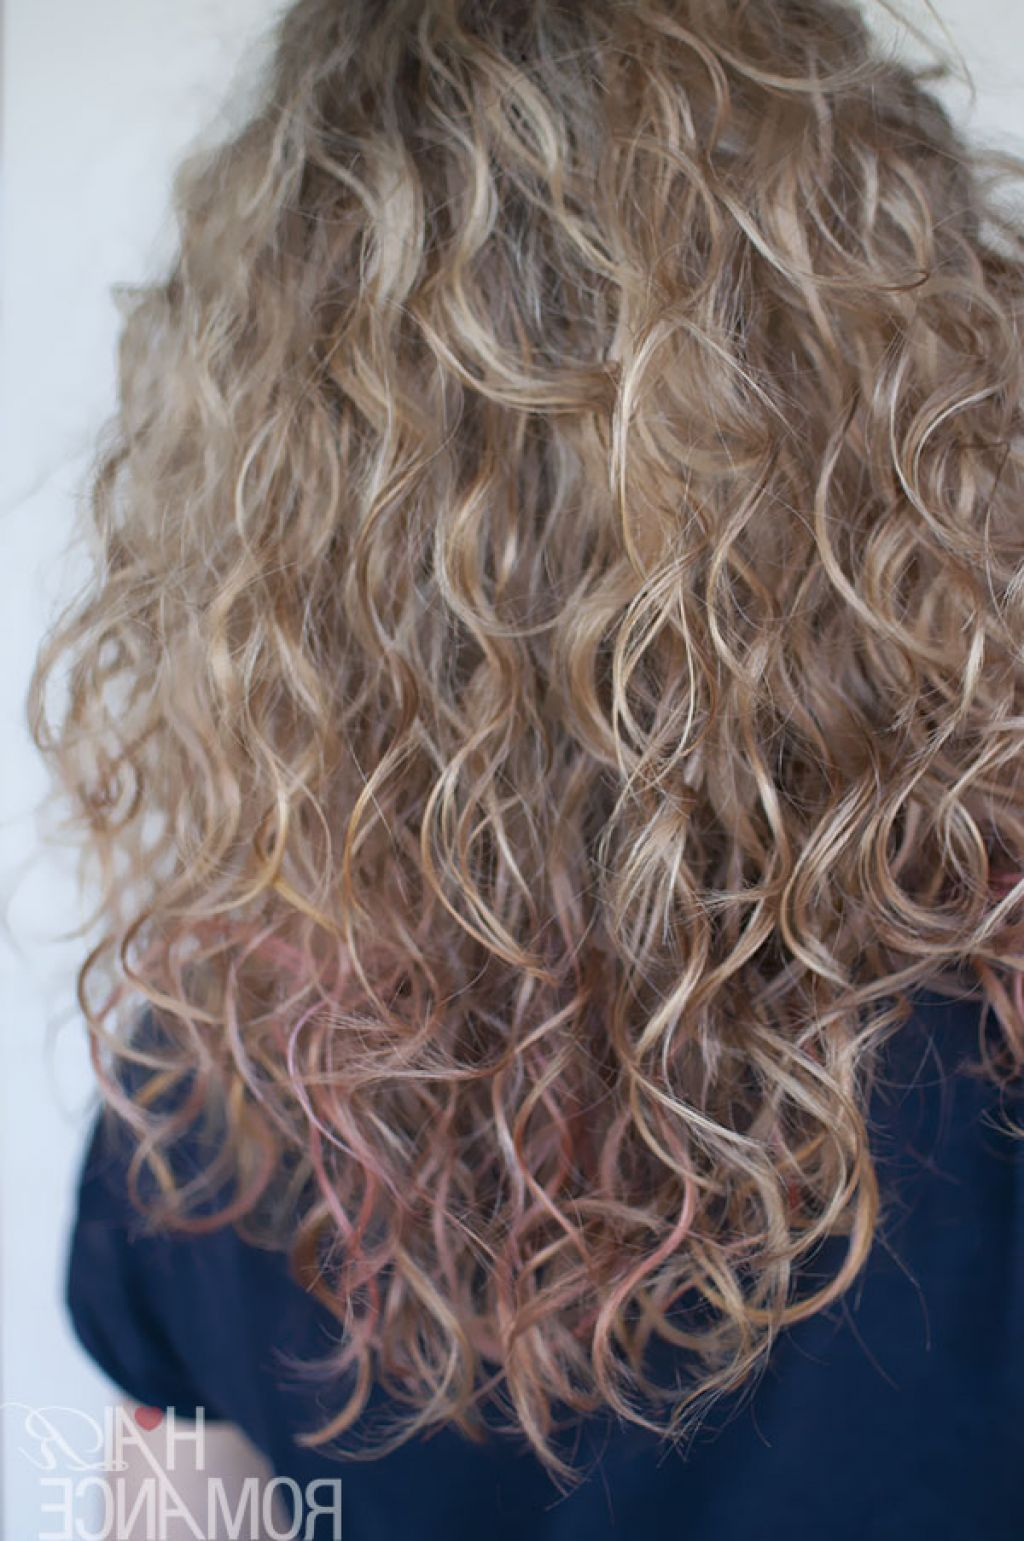 Long Layered Hairstyles For Curly Hair Google Search Curly Hair Photos Curly Hair Styles Curly Hair Styles Naturally